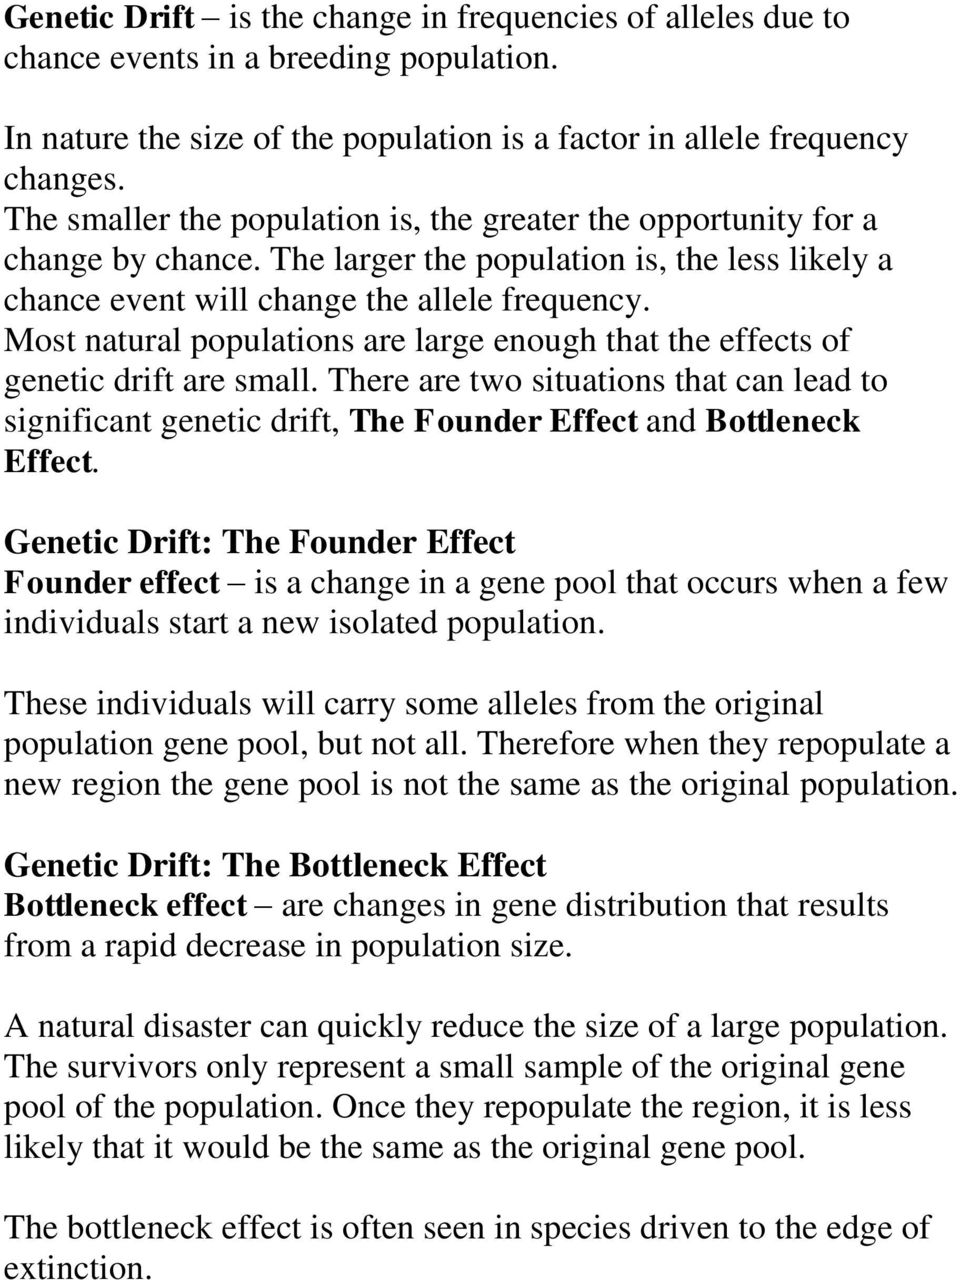 Most natural populations are large enough that the effects of genetic drift are small. There are two situations that can lead to significant genetic drift, The Founder Effect and Bottleneck Effect.